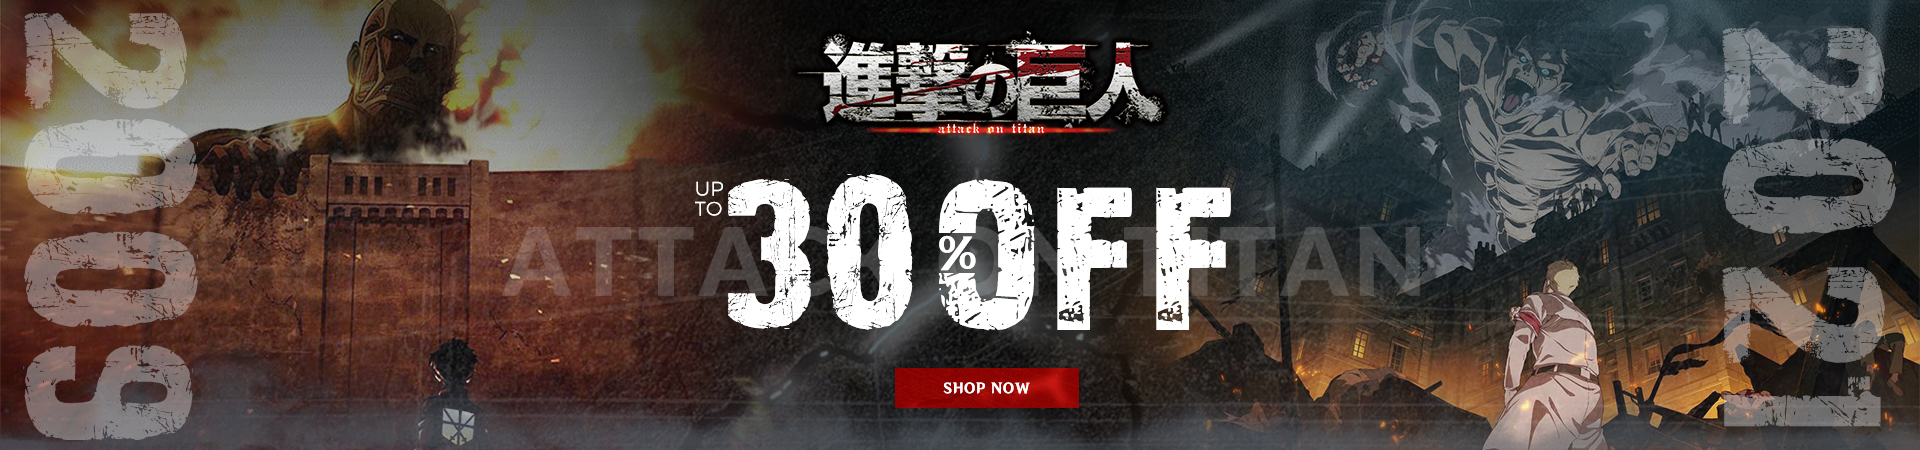 Up to 30% for Attack on Titan